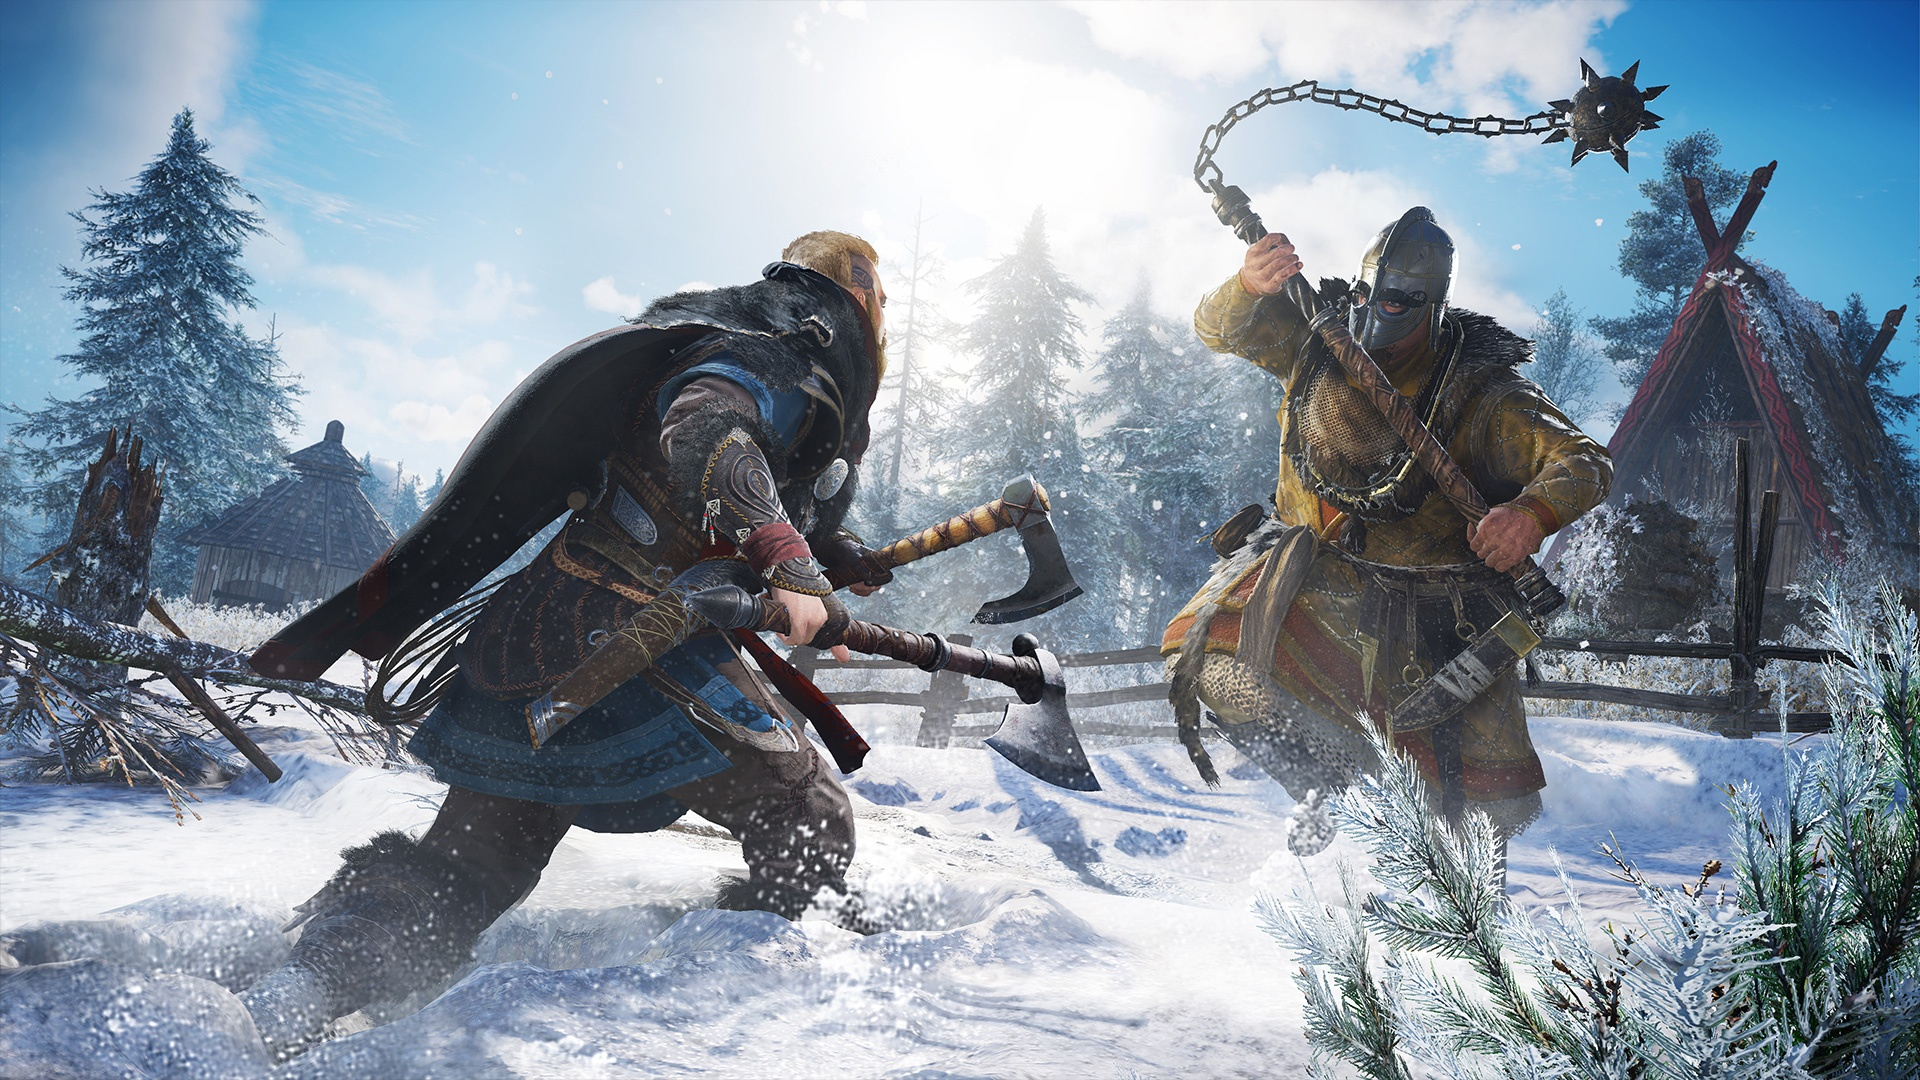 'Assassin's Creed: Valhalla' Has Best Launch Sales in Series History